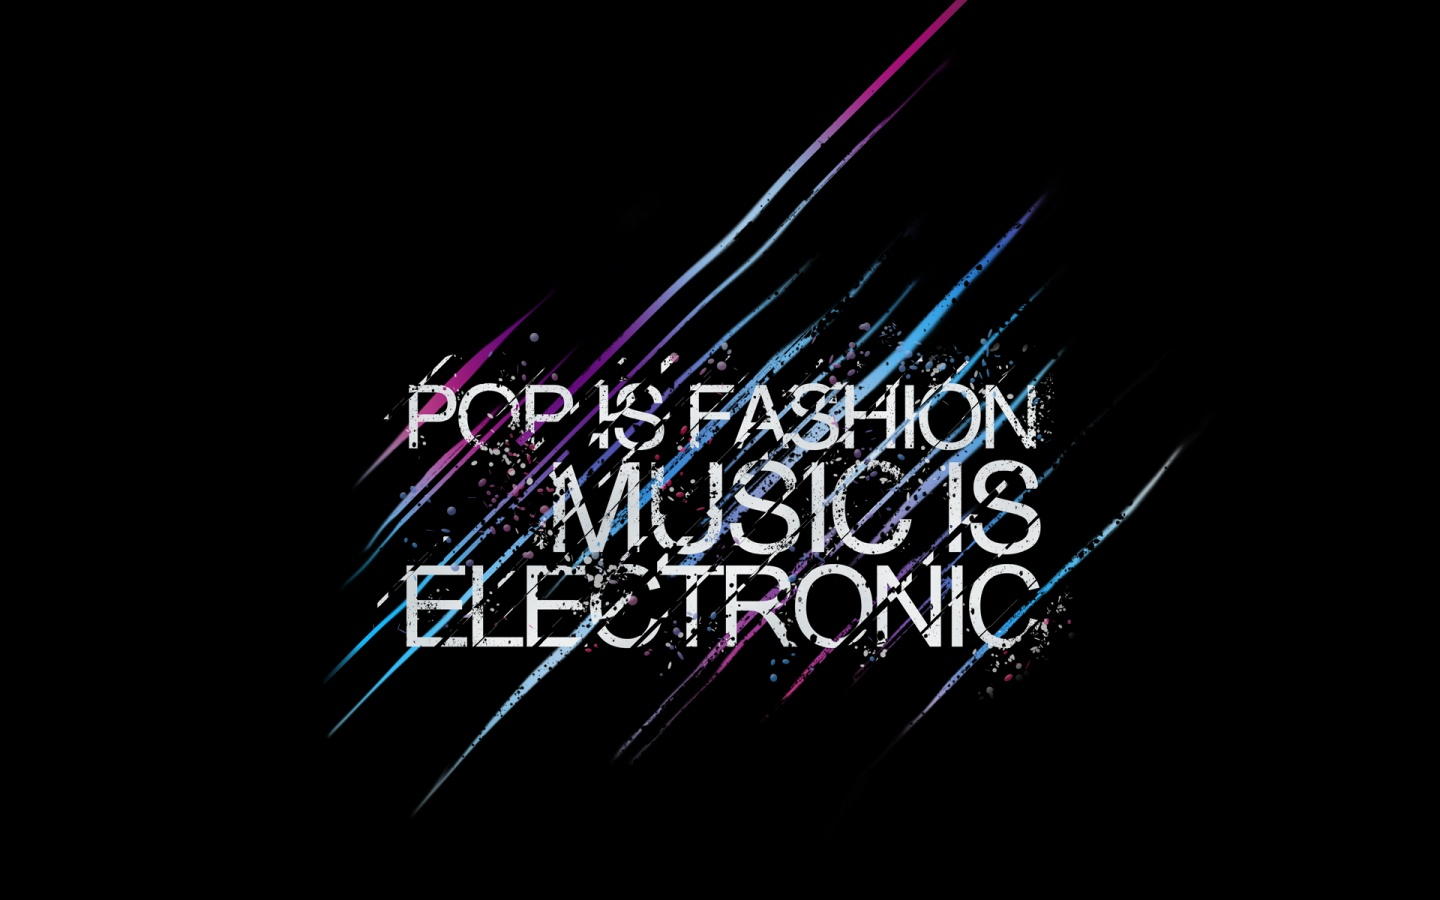 1440x900 Electro Power wallpaper music and dance wallpapers 1440x900